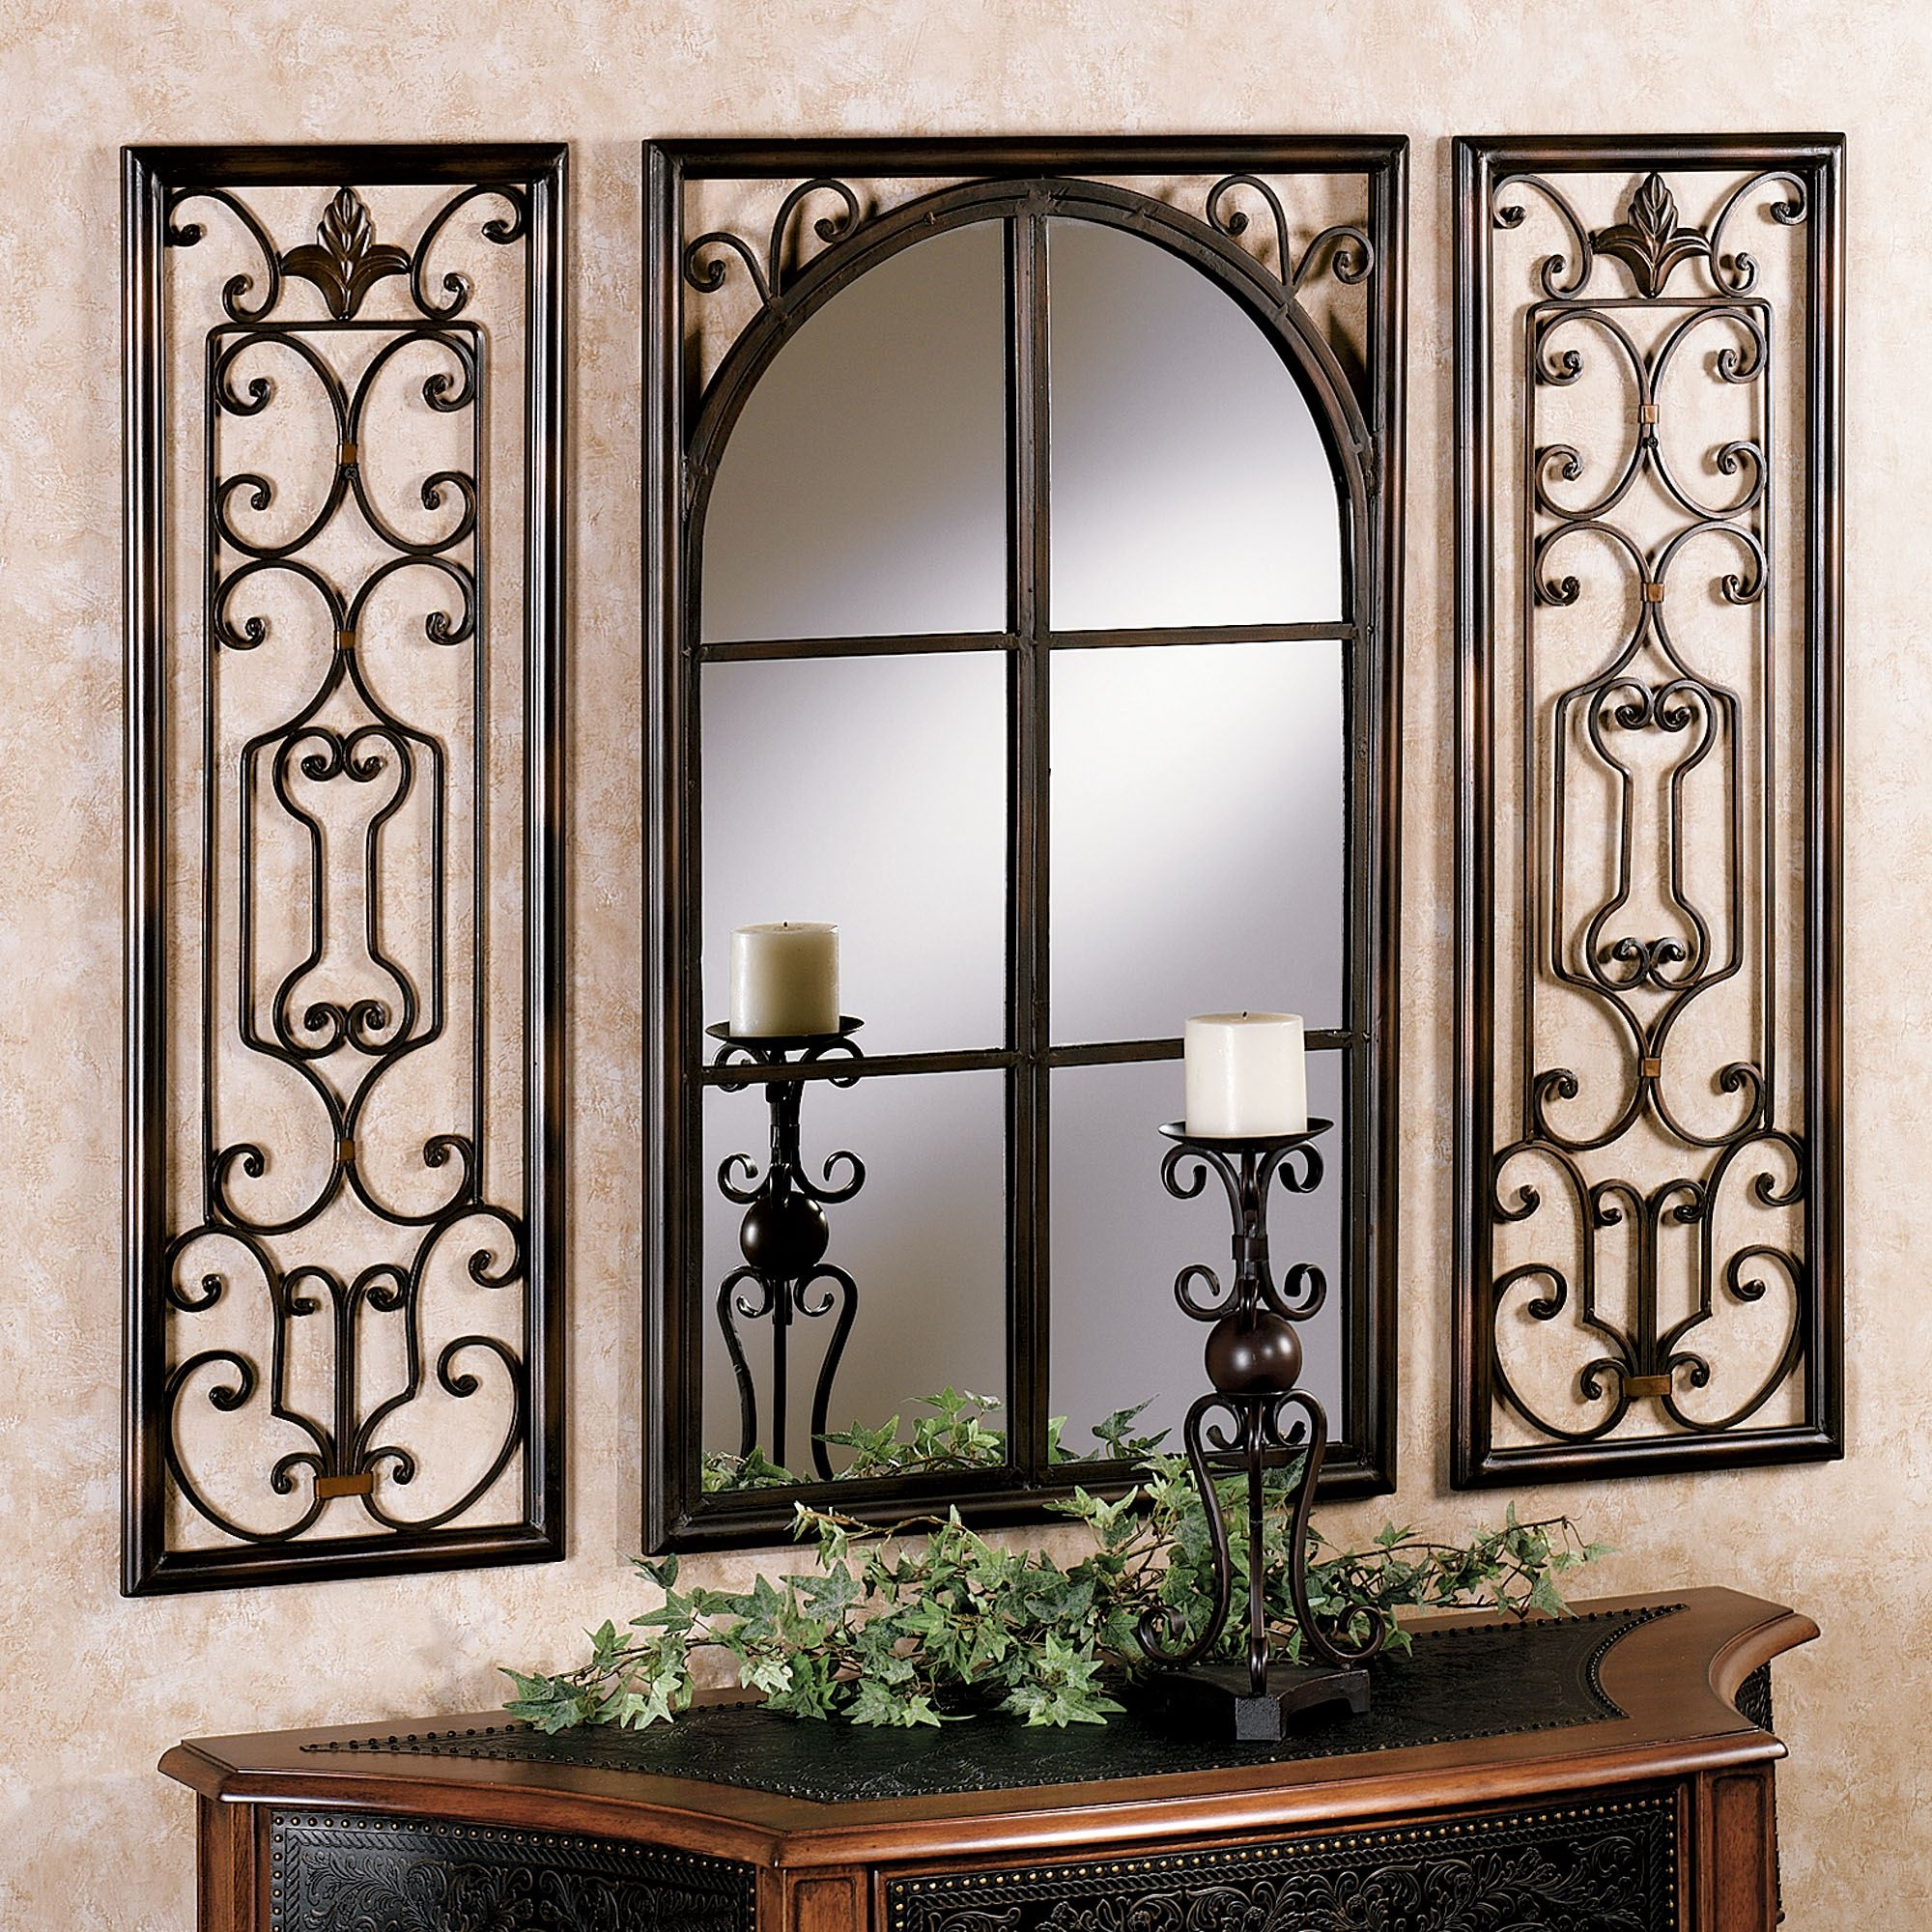 Provence Bronze Finish Wall Mirror Set Intended For Bronze Wall Mirrors (Image 5 of 15)